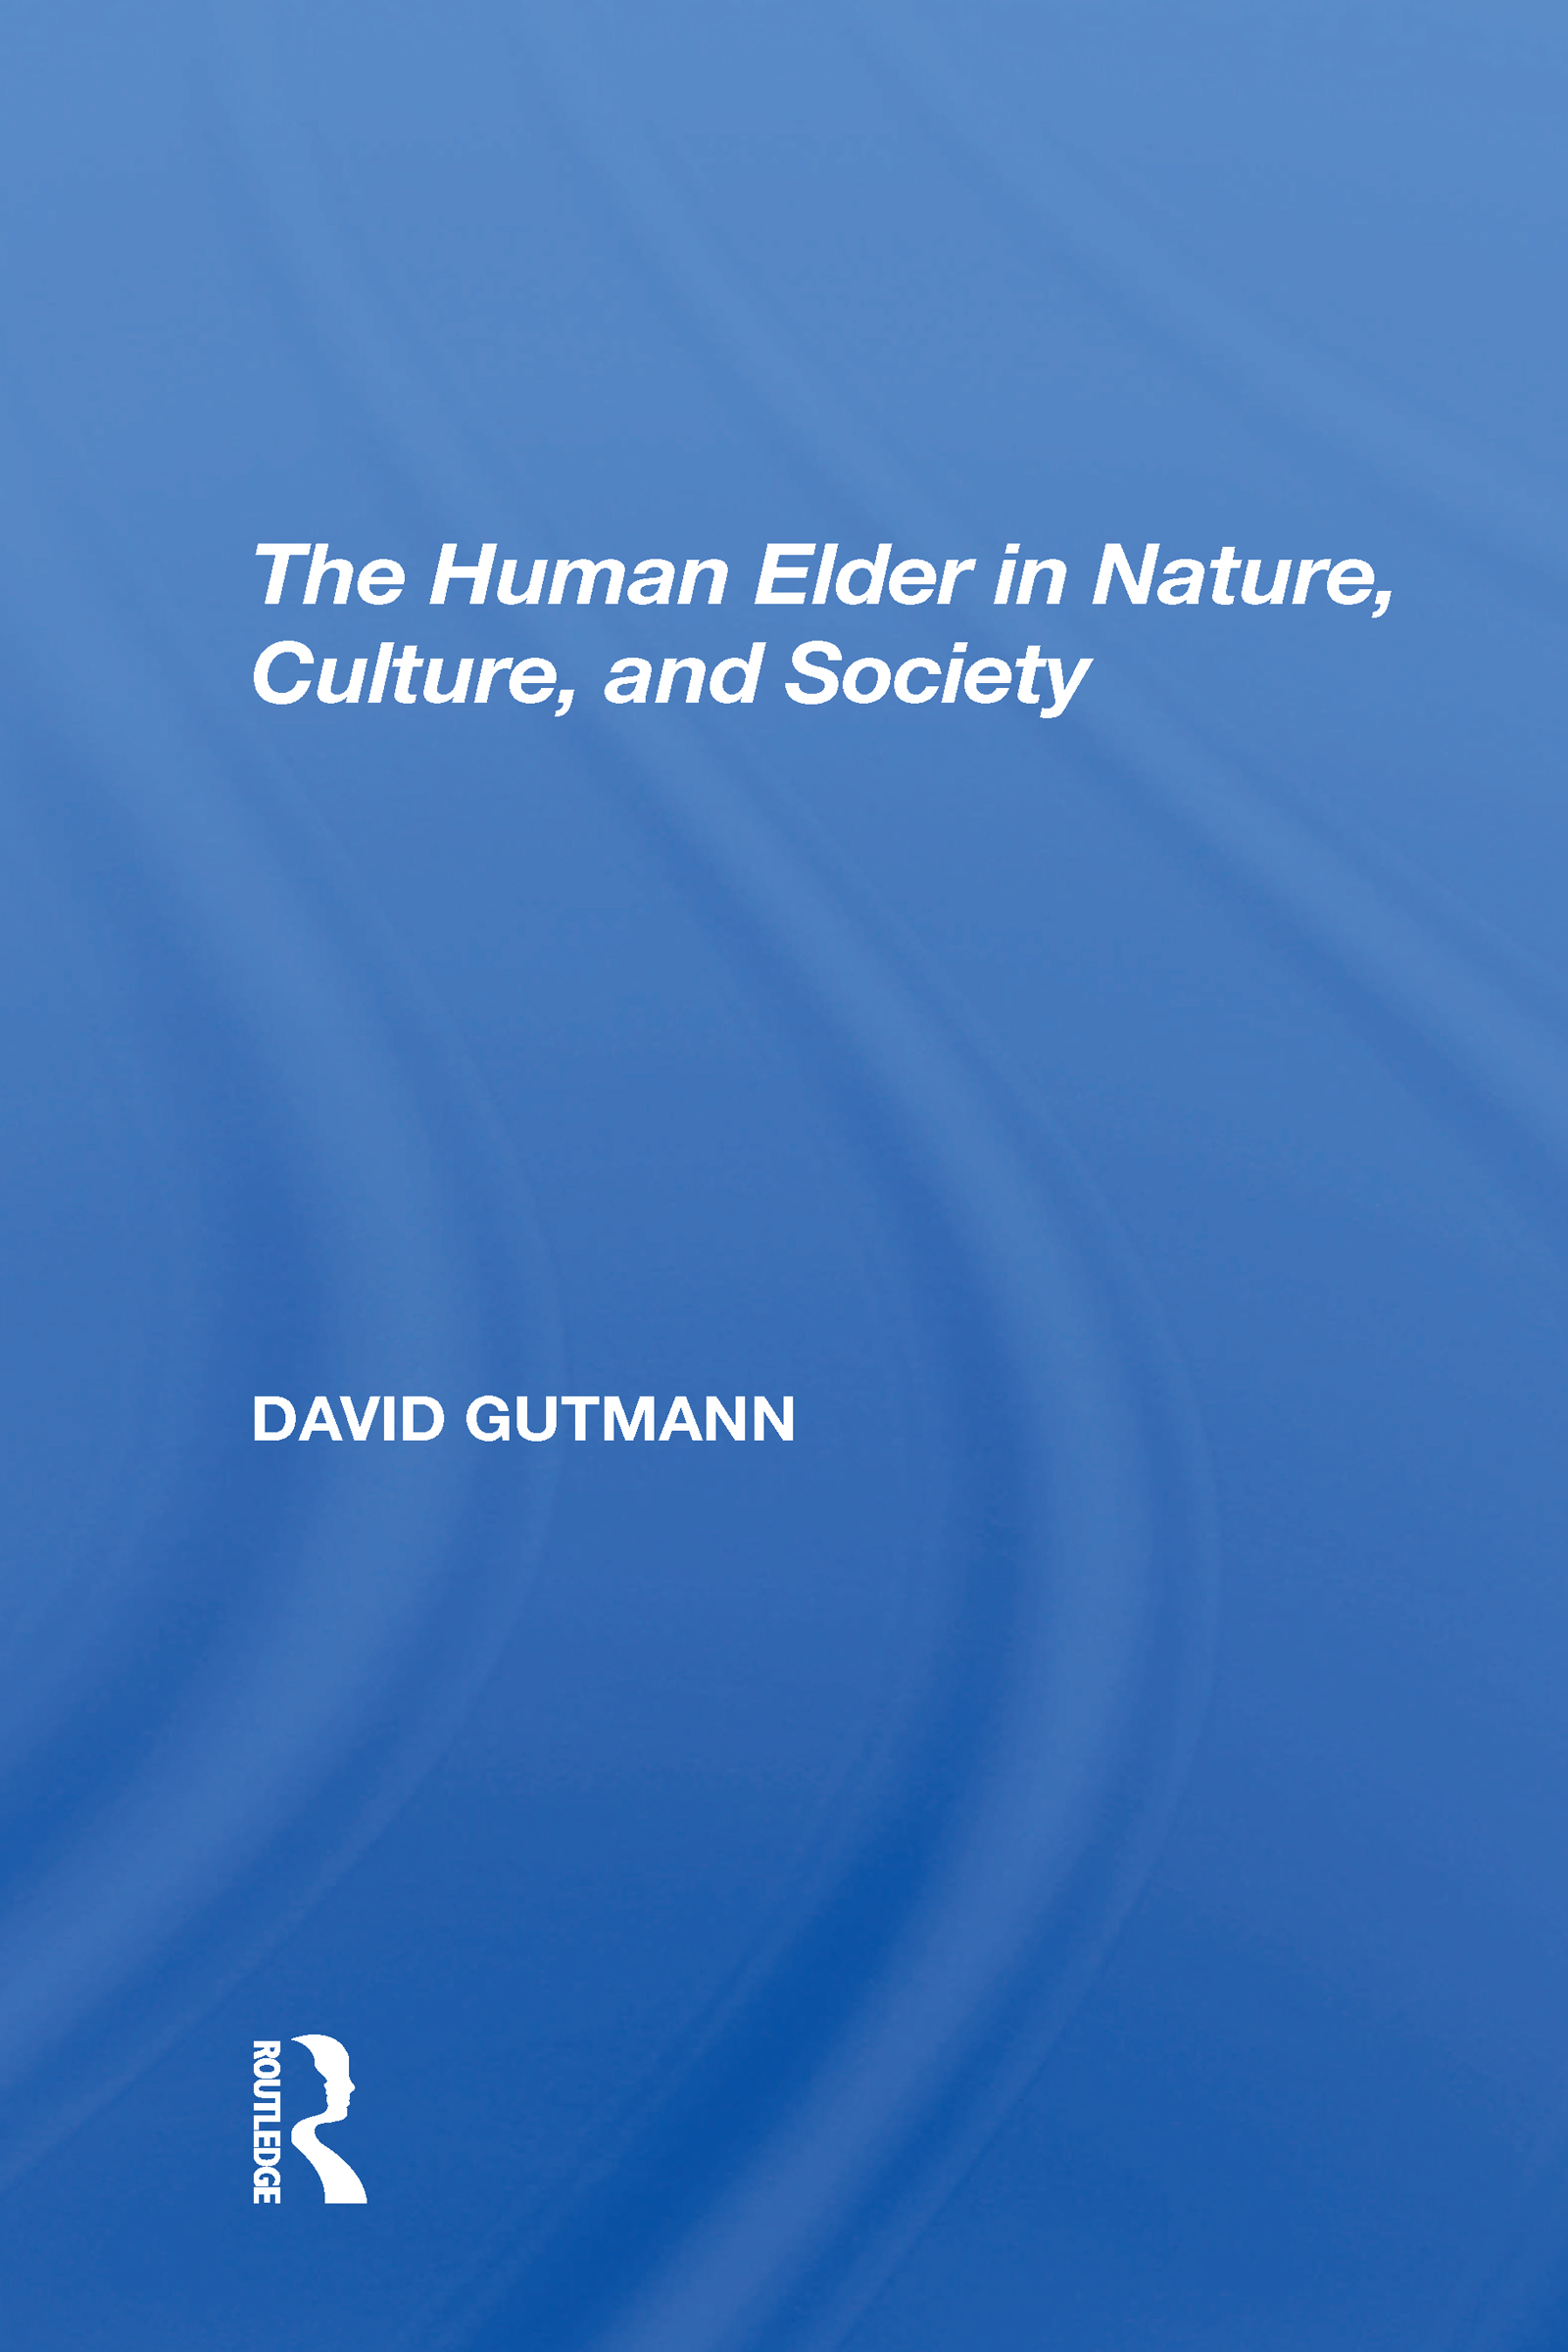 The Human Elder In Nature, Culture, And Society